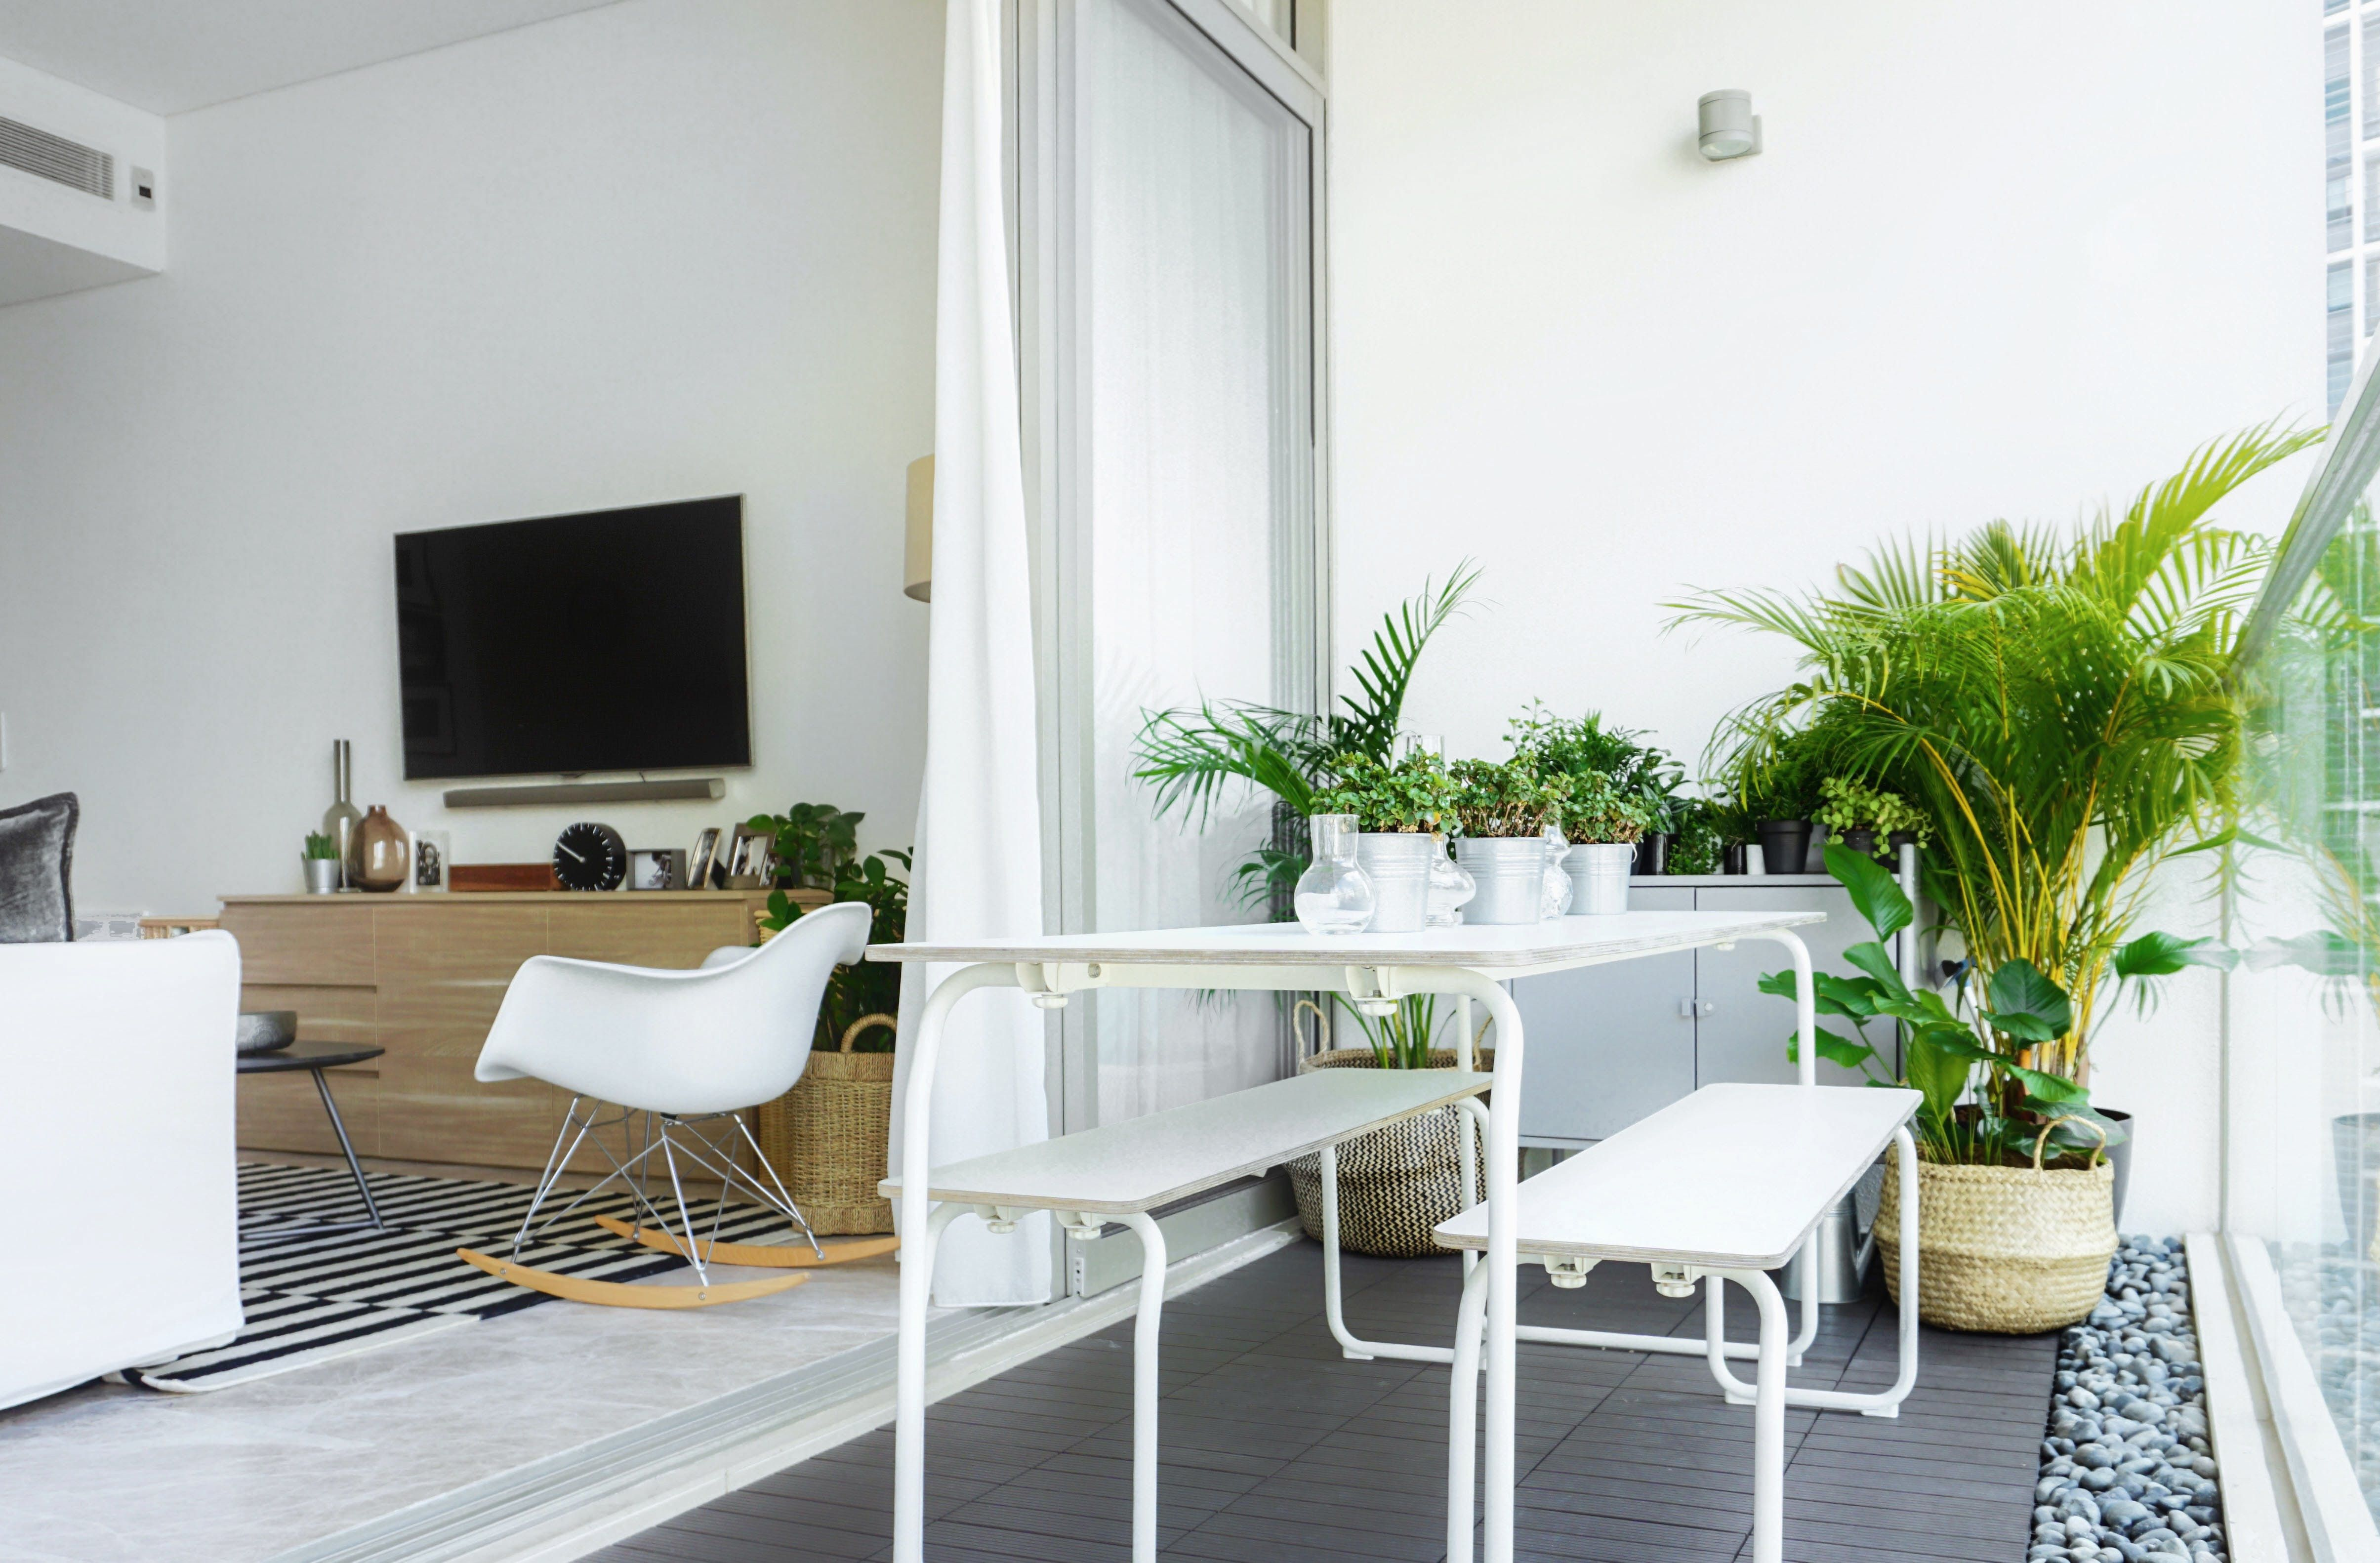 A Polished Condo In Singapore With Carefully Considered Clutter Condo Balcony Home Decor Outdoor Dining Area